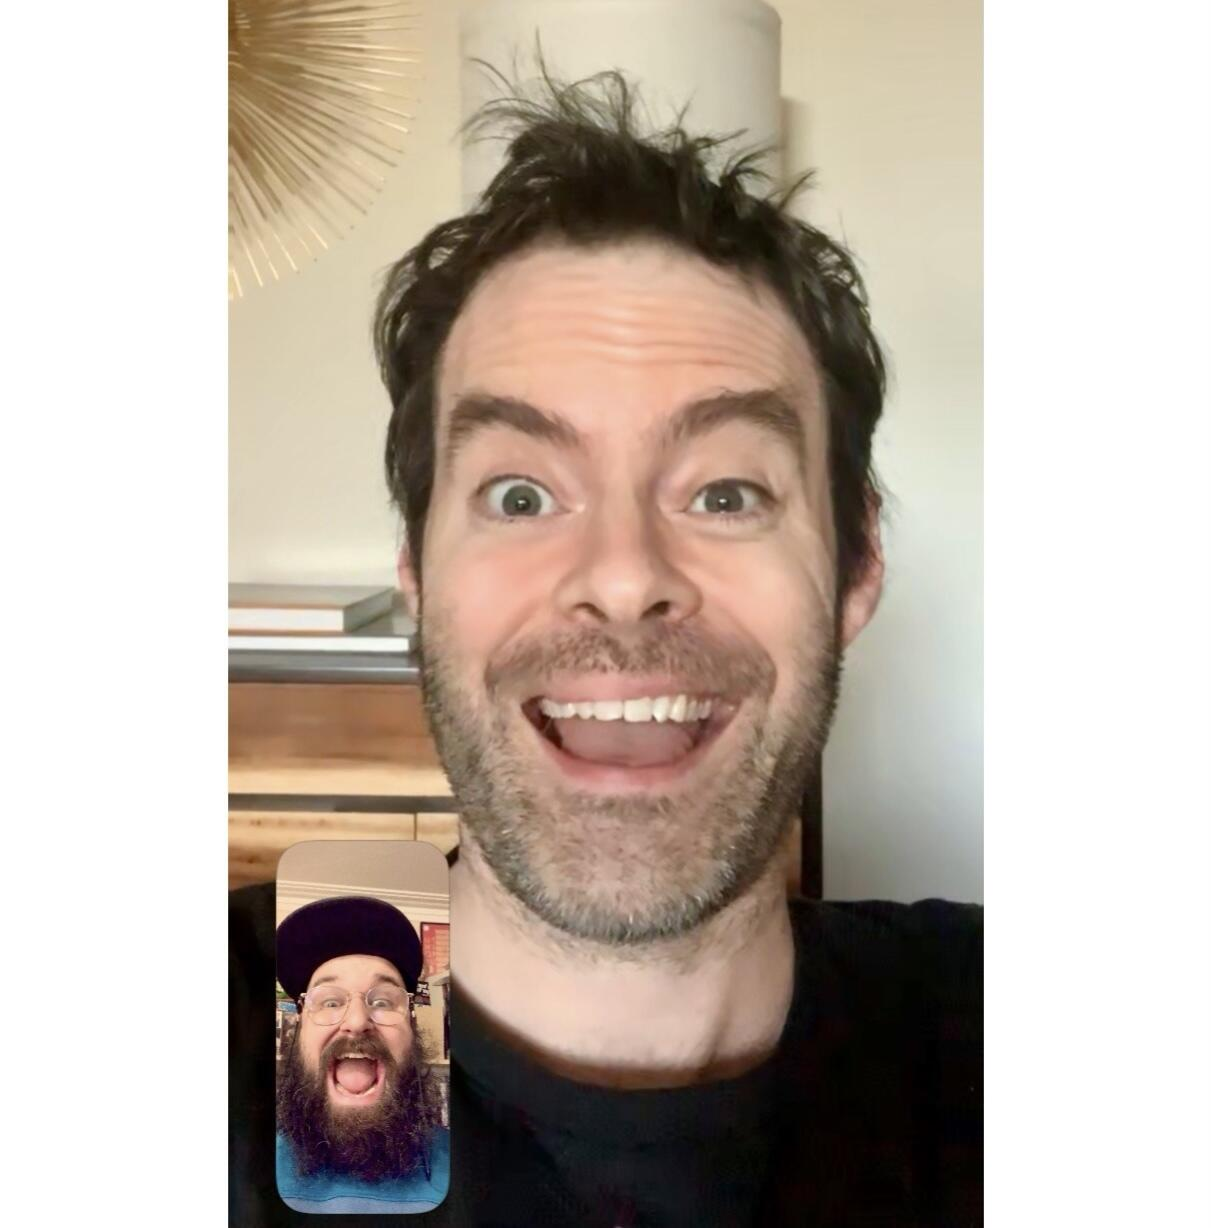 Episode 312 - Bill Hader (Barry, SNL, Superbad, Cloudy With A Chance of Meatballs)